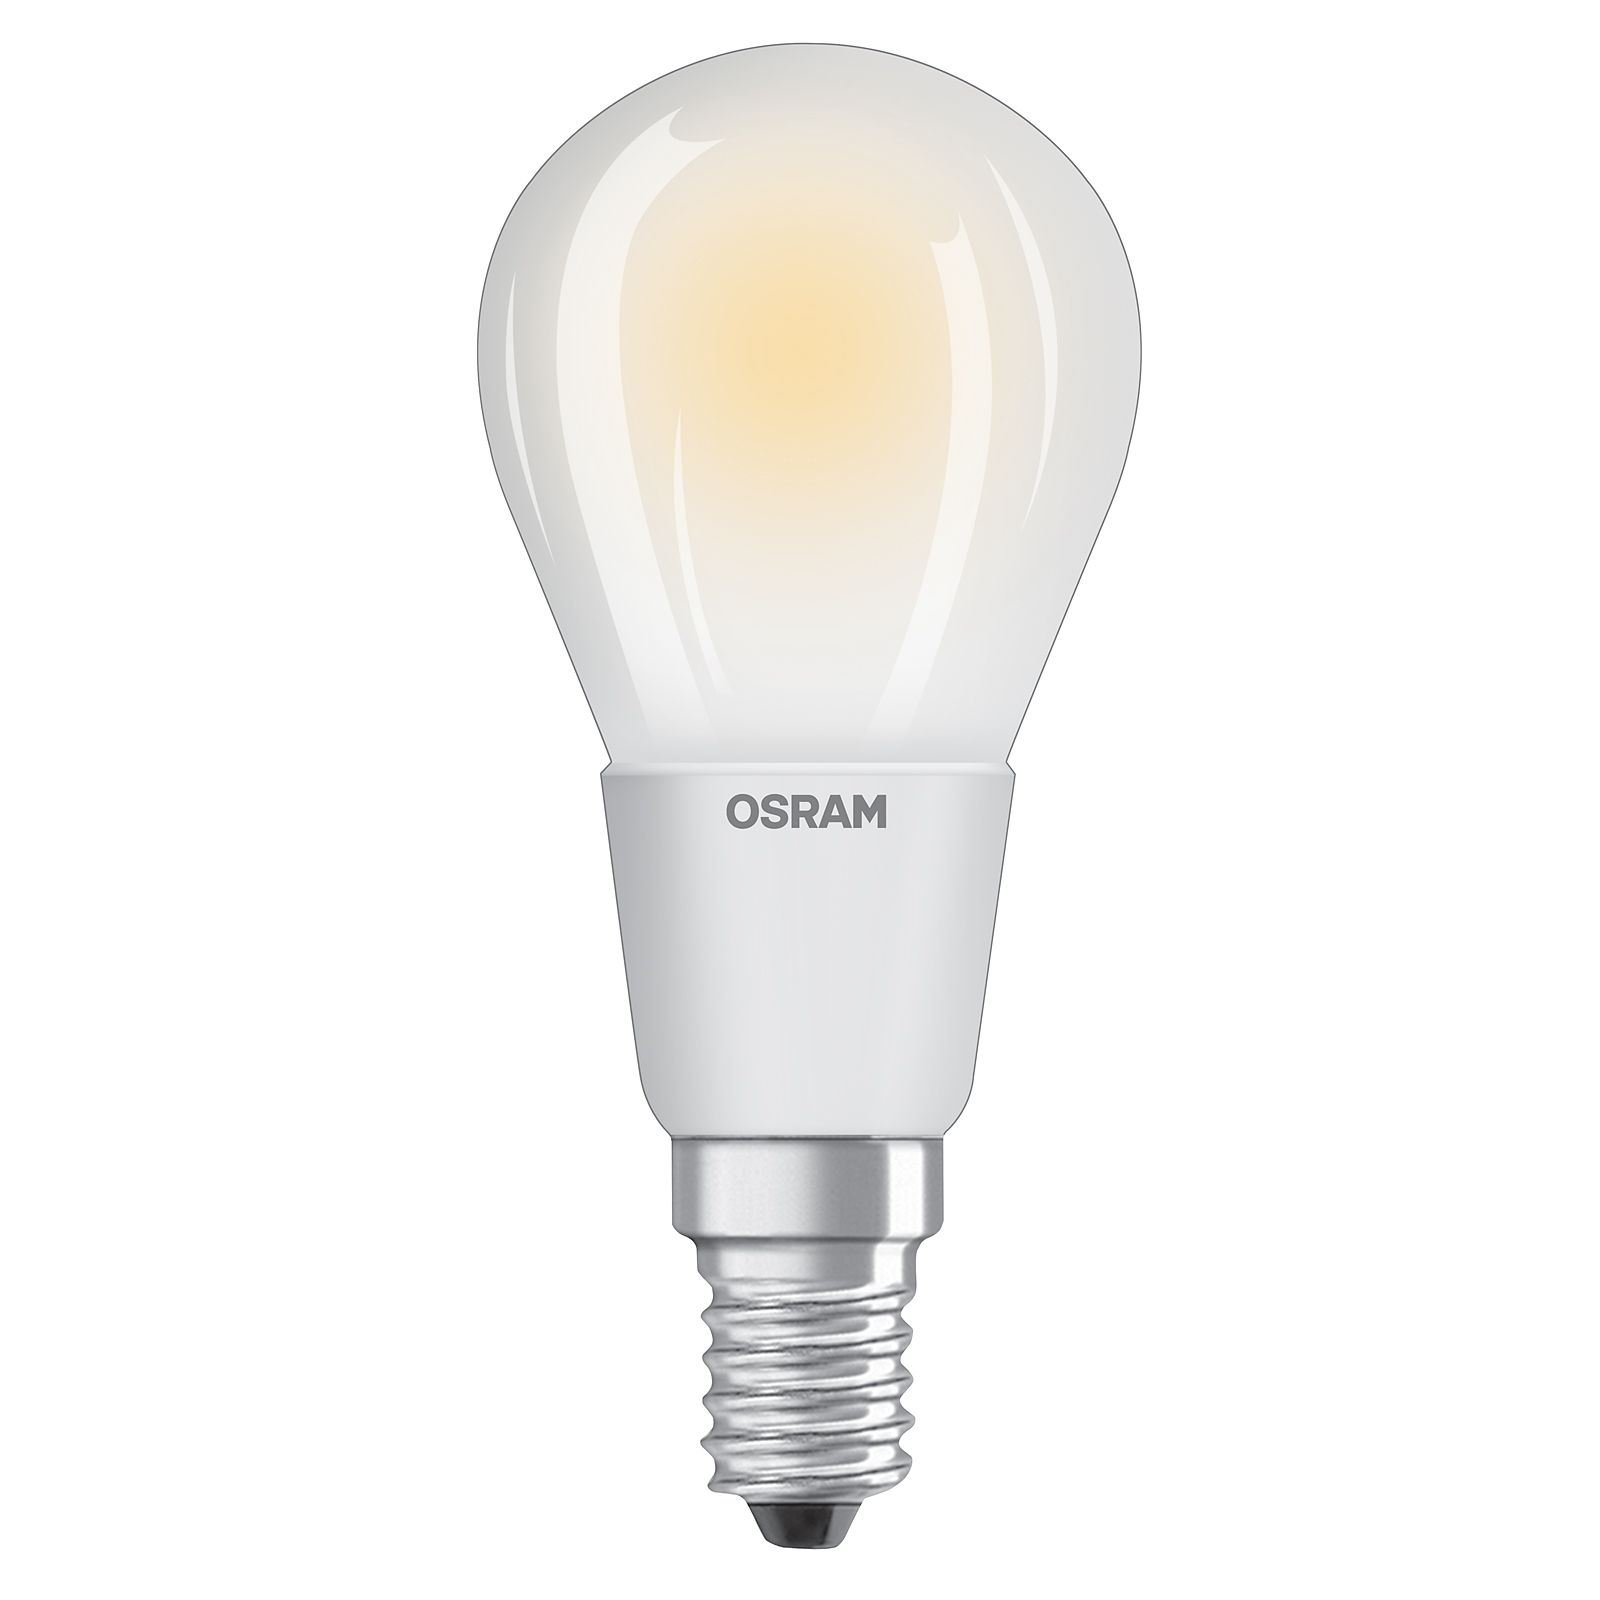 osram led retrofit classic p 40 e14 5w wie 40 watt 470 lumen warmwei dimmbar. Black Bedroom Furniture Sets. Home Design Ideas